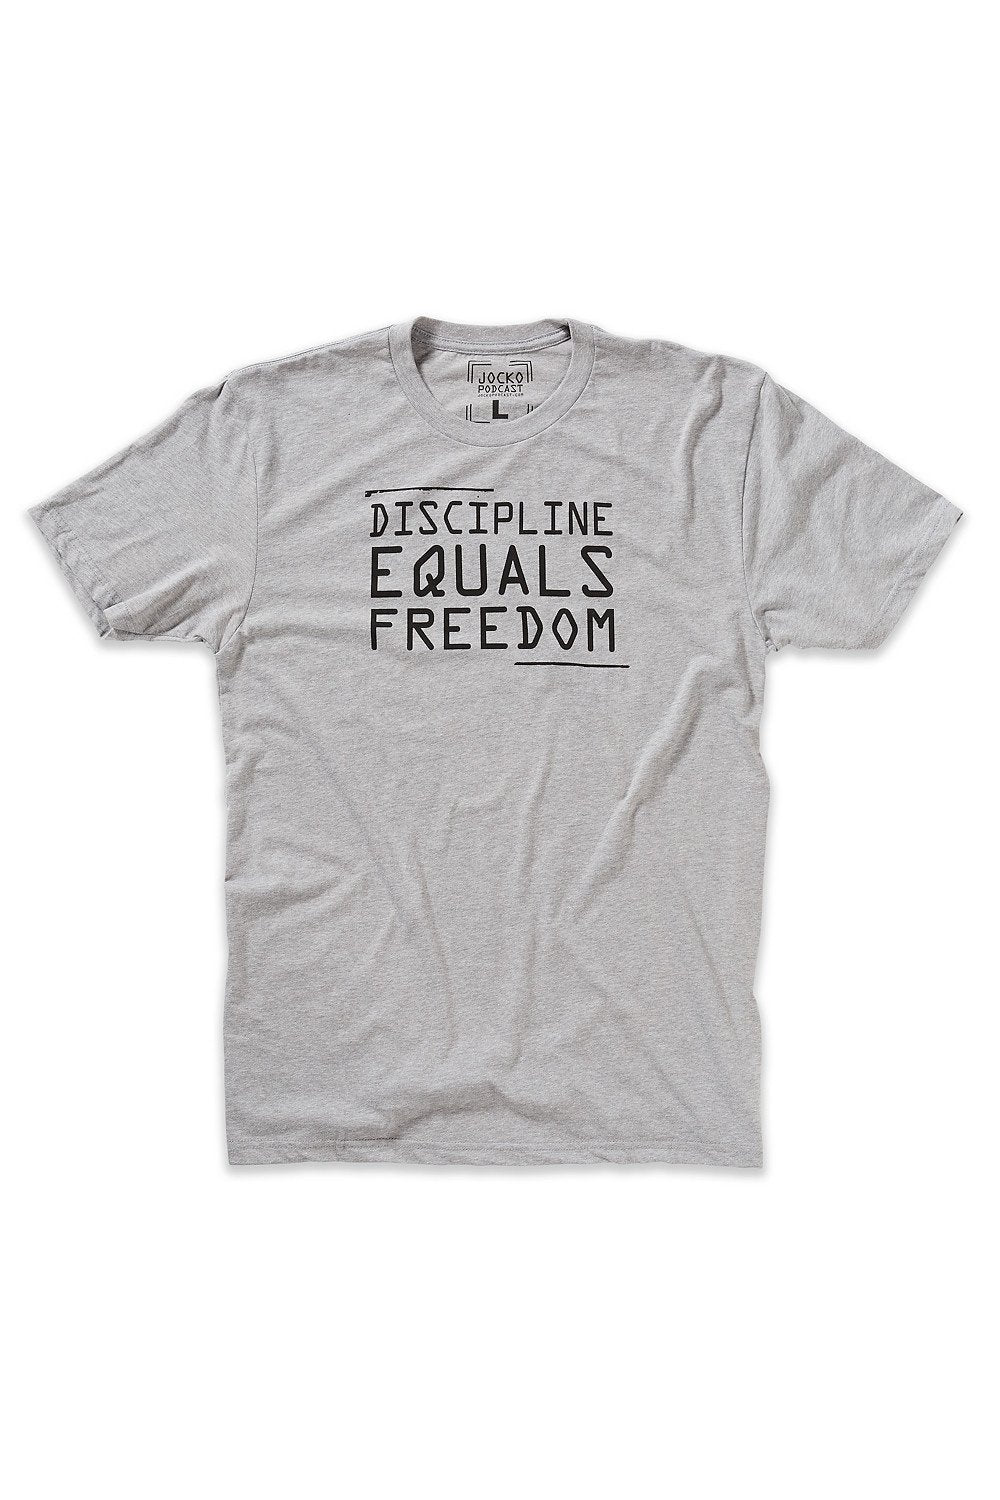 DISCIPLINE EQUALS FREEDOM TEE SHIRT